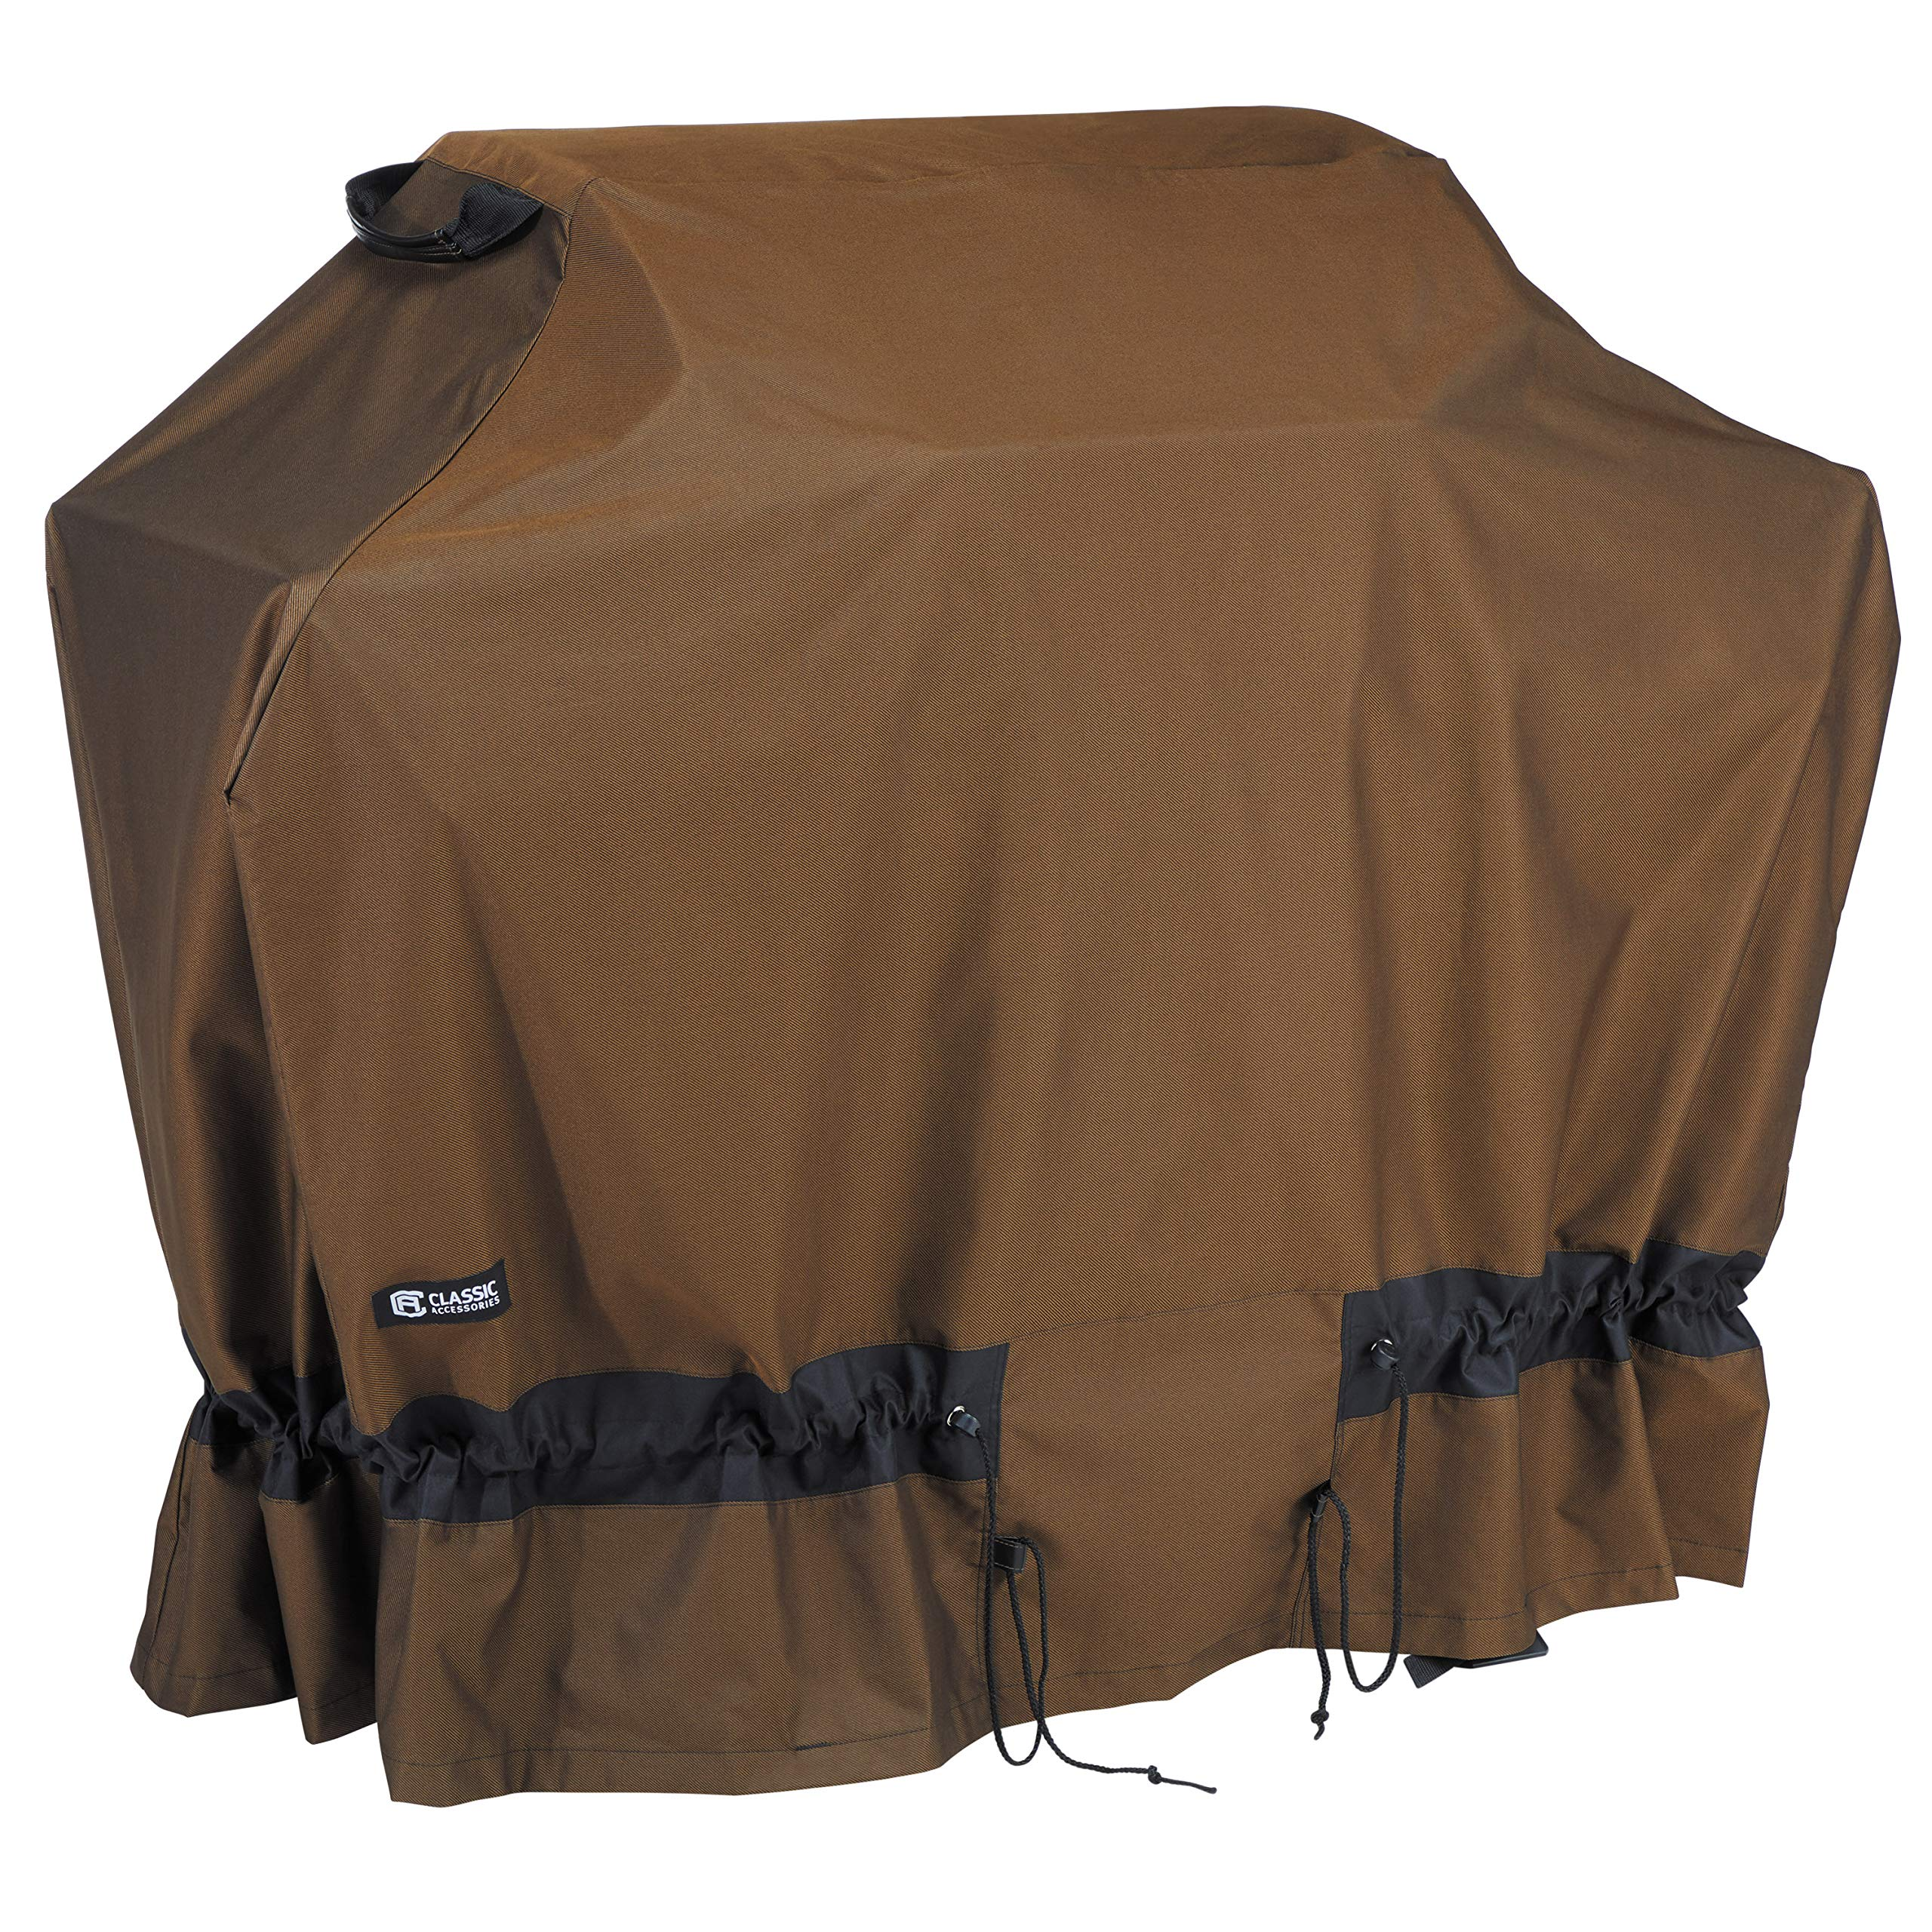 Classic Accessories Elkridge Water-Resistant 58 Inch BBQ Grill Cover